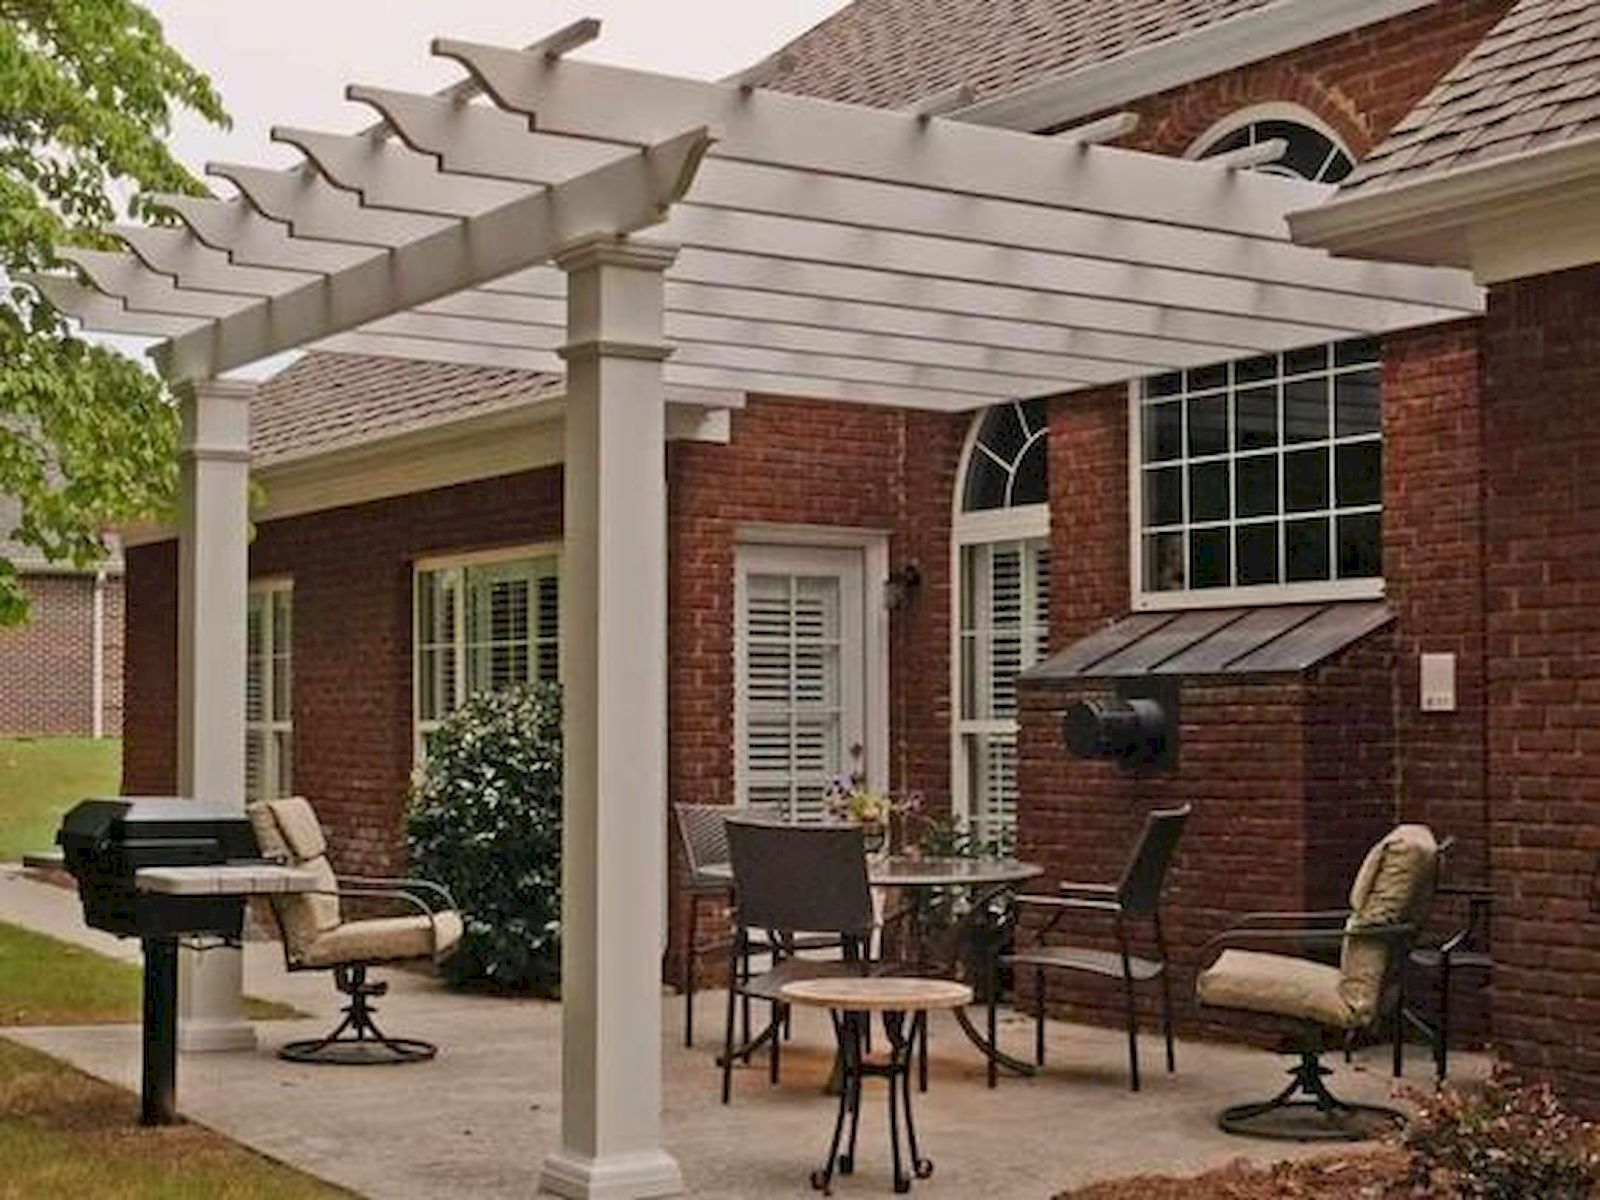 10 Diy Deck Pergolas Designs D For The One That Meets Your Landscaping Needs Pergolas Can Be Attached To The House Or In 2020 Pergola Patio Backyard Pergola Patio